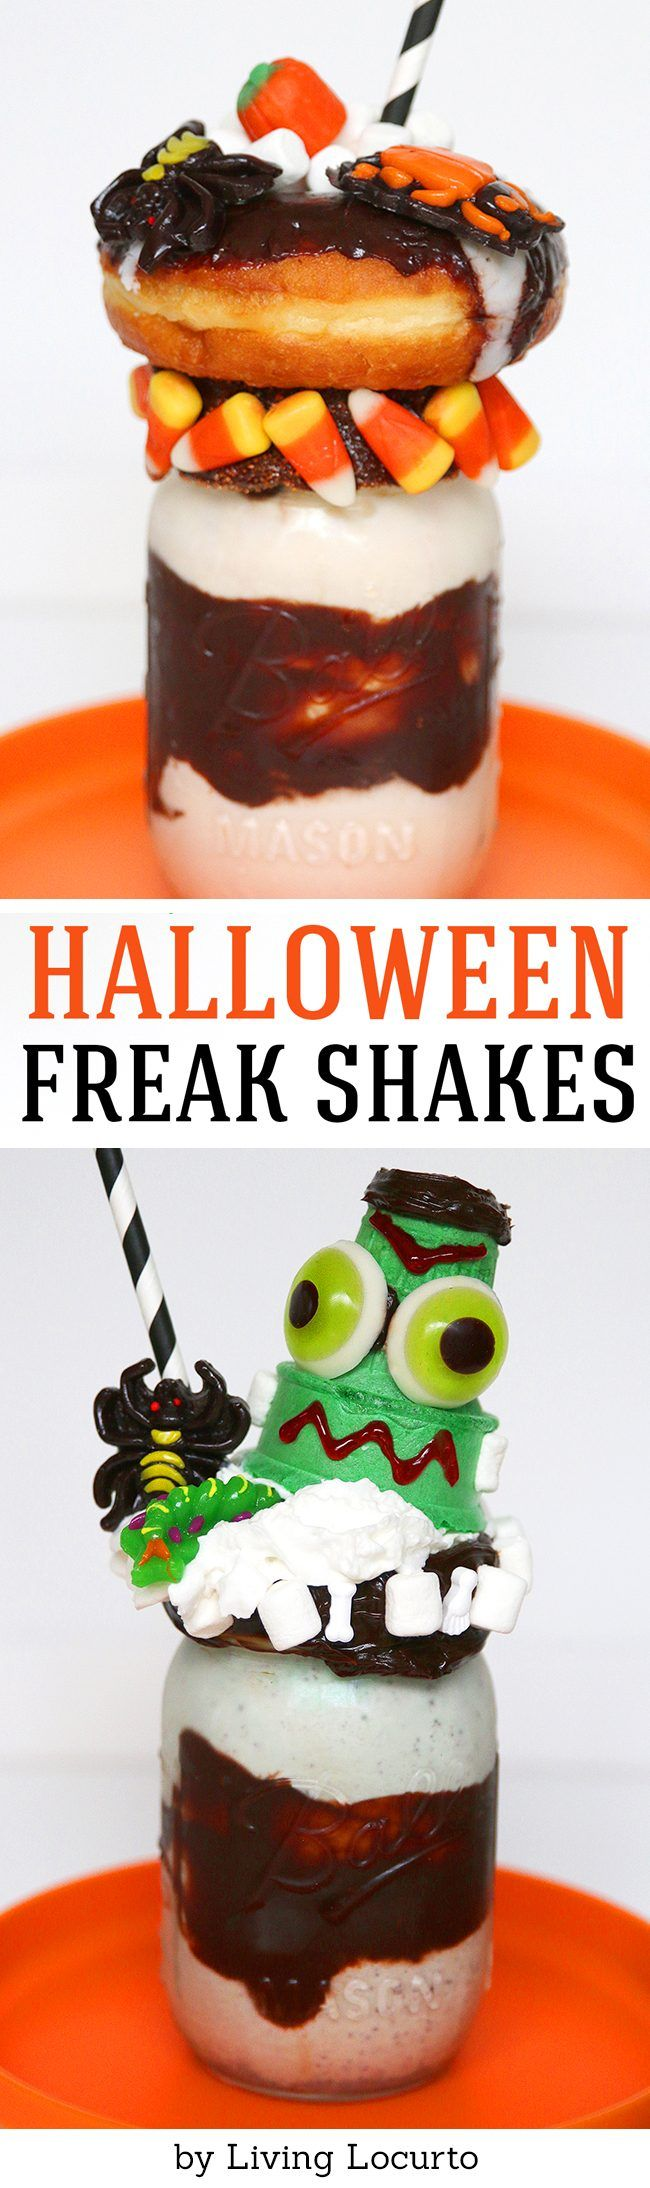 Spooktacular Halloween Milkshake Recipes You Have to Try ...